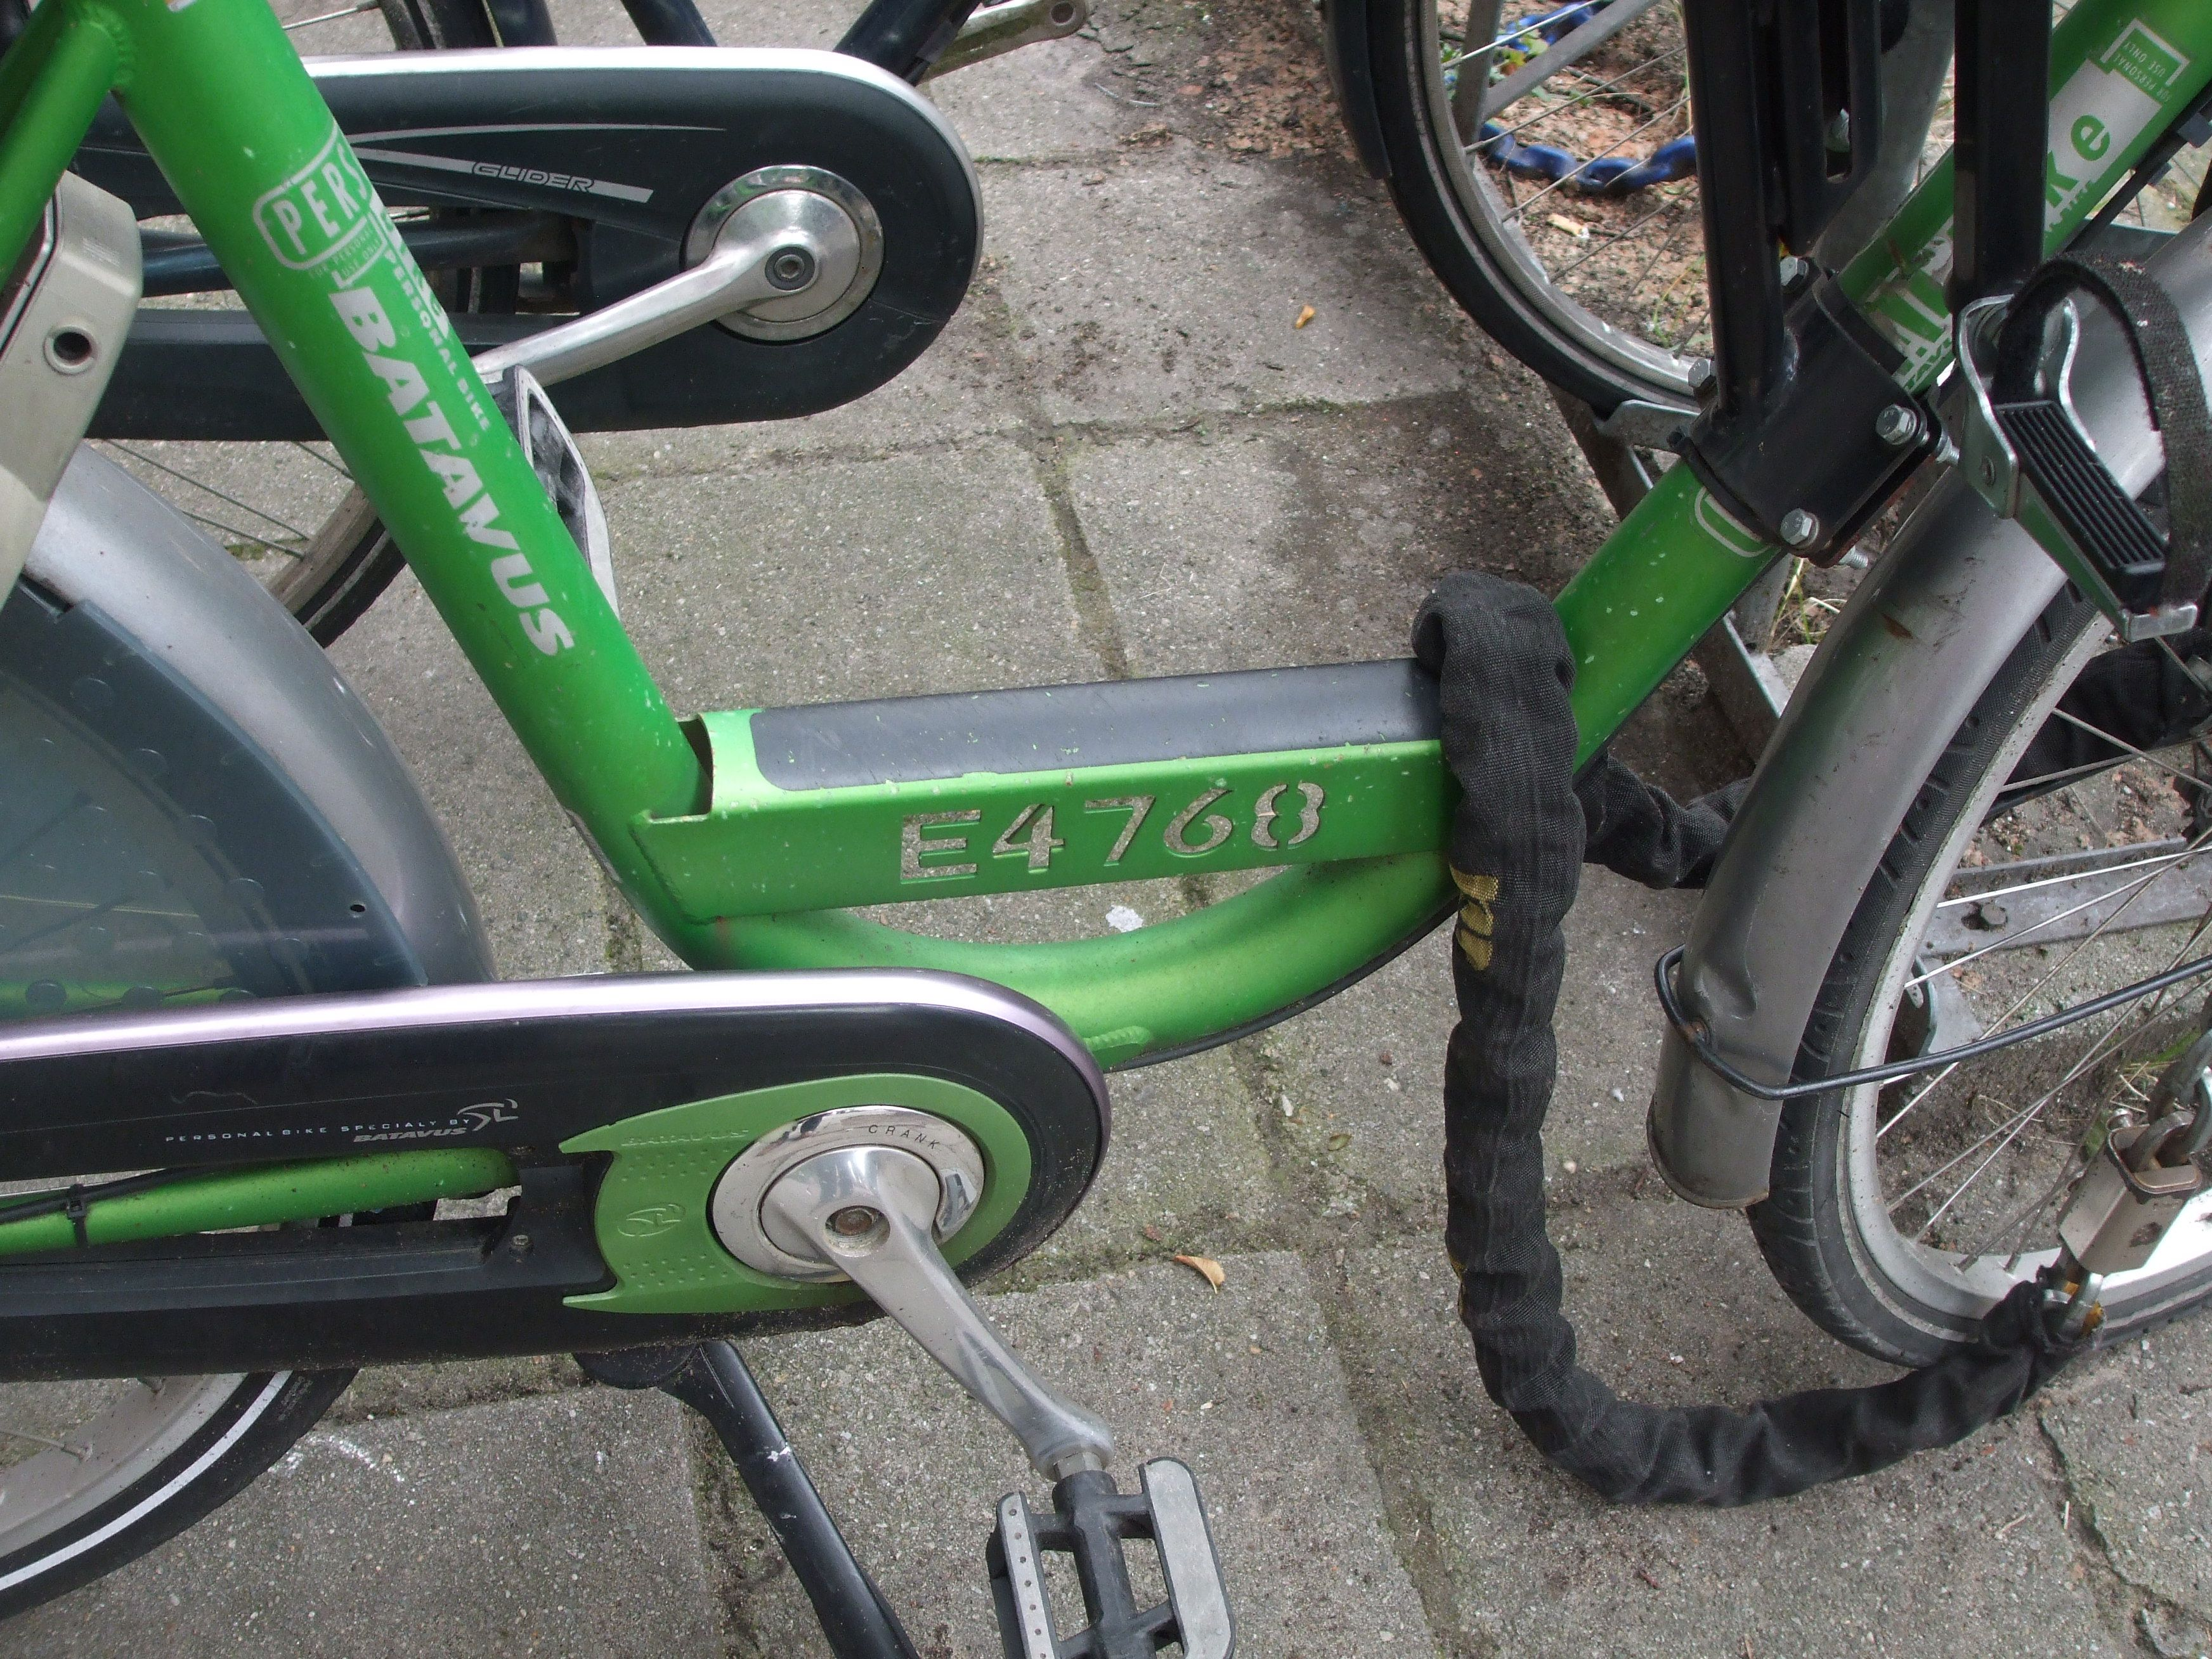 bike with text and number green